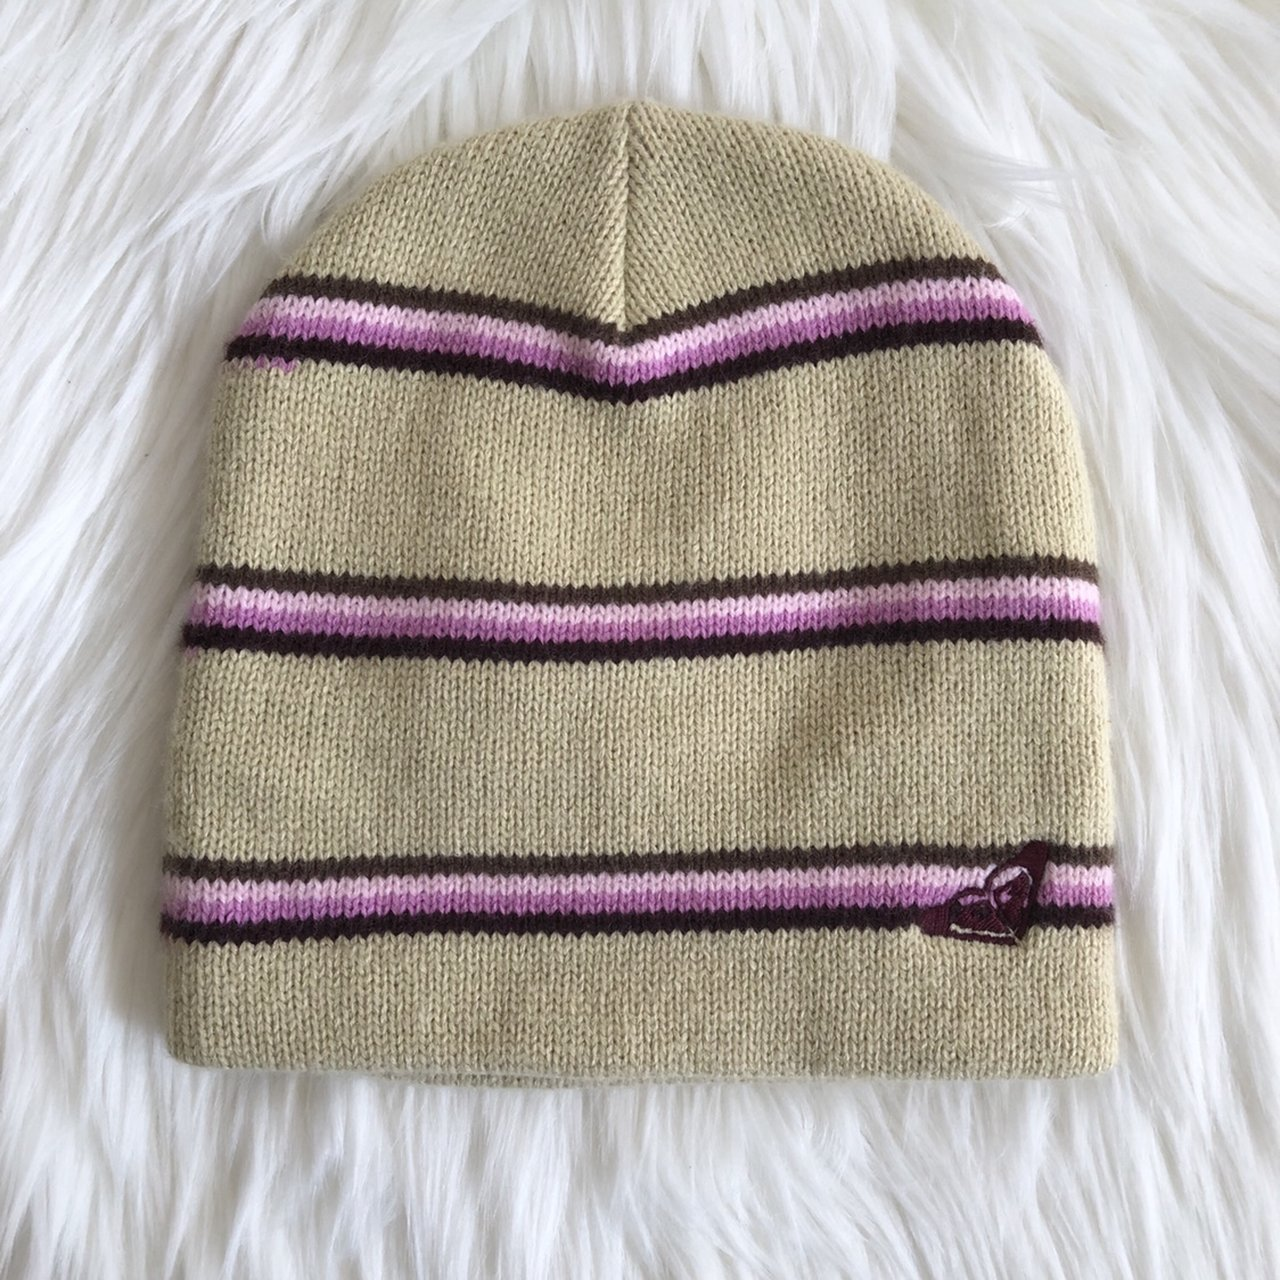 766d4b88420 NWOT Roxy beanie! Tan with purple stripes. Authentic. for me - Depop